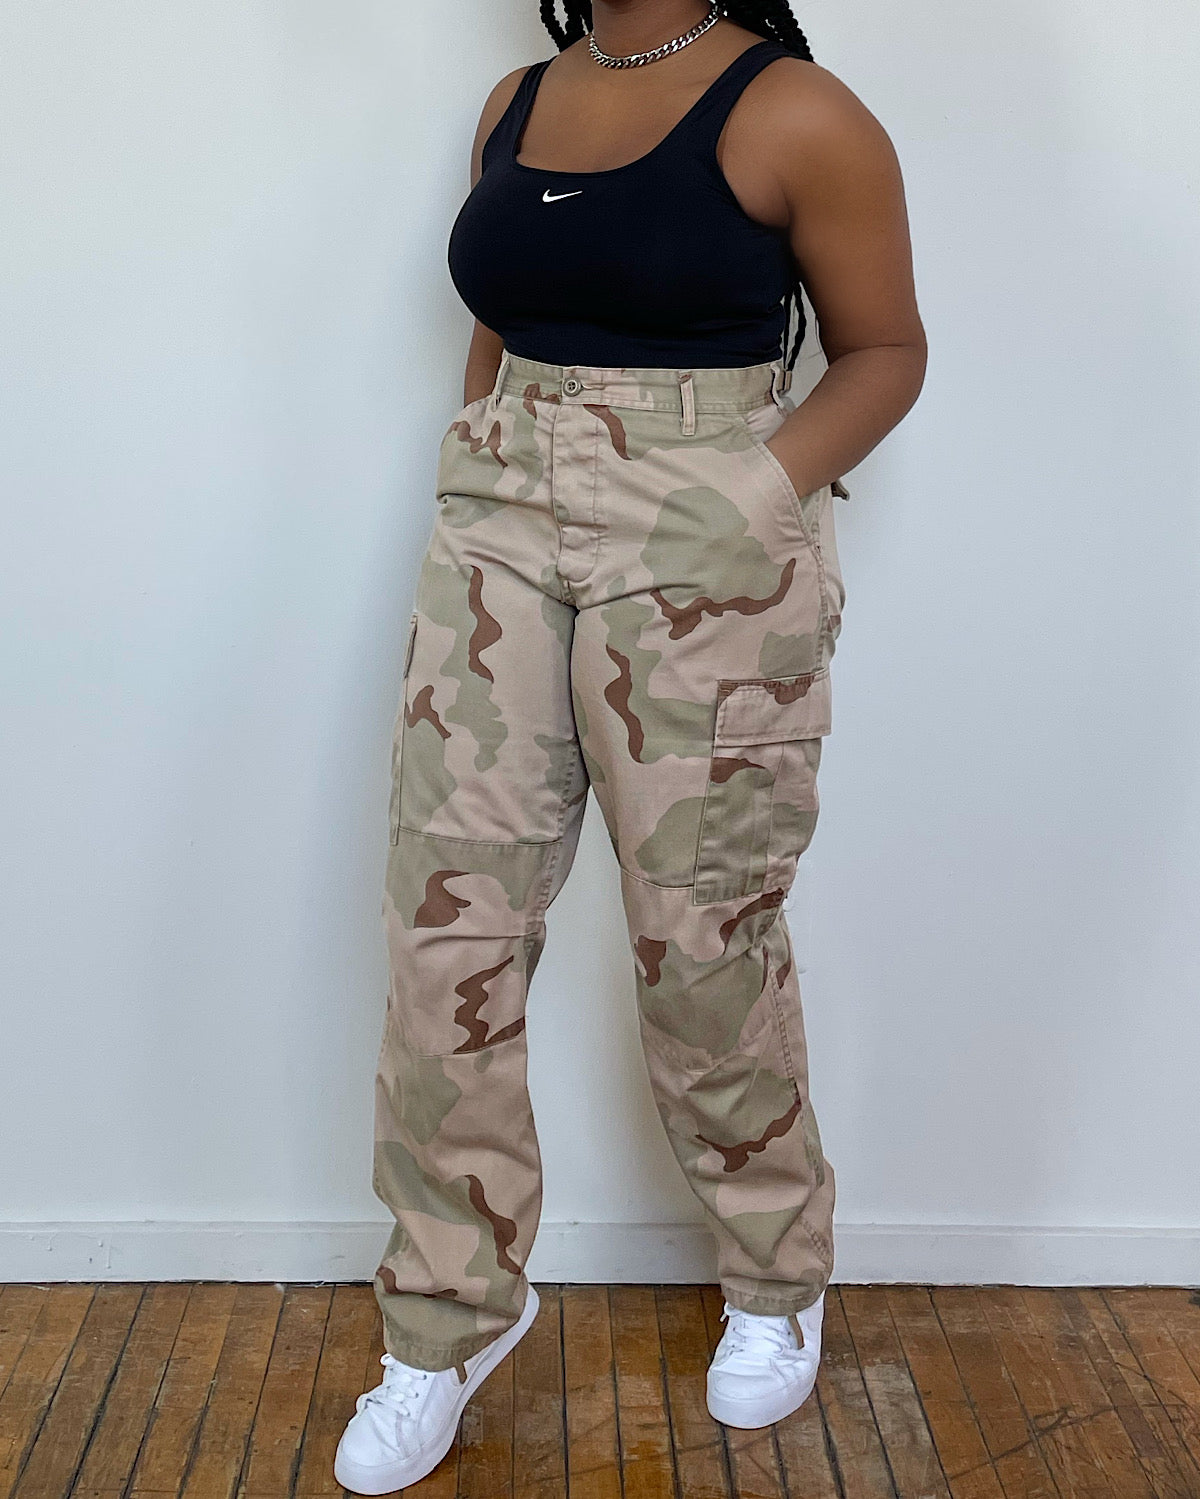 Vintage 90s Camo Army Pants (L/XL)